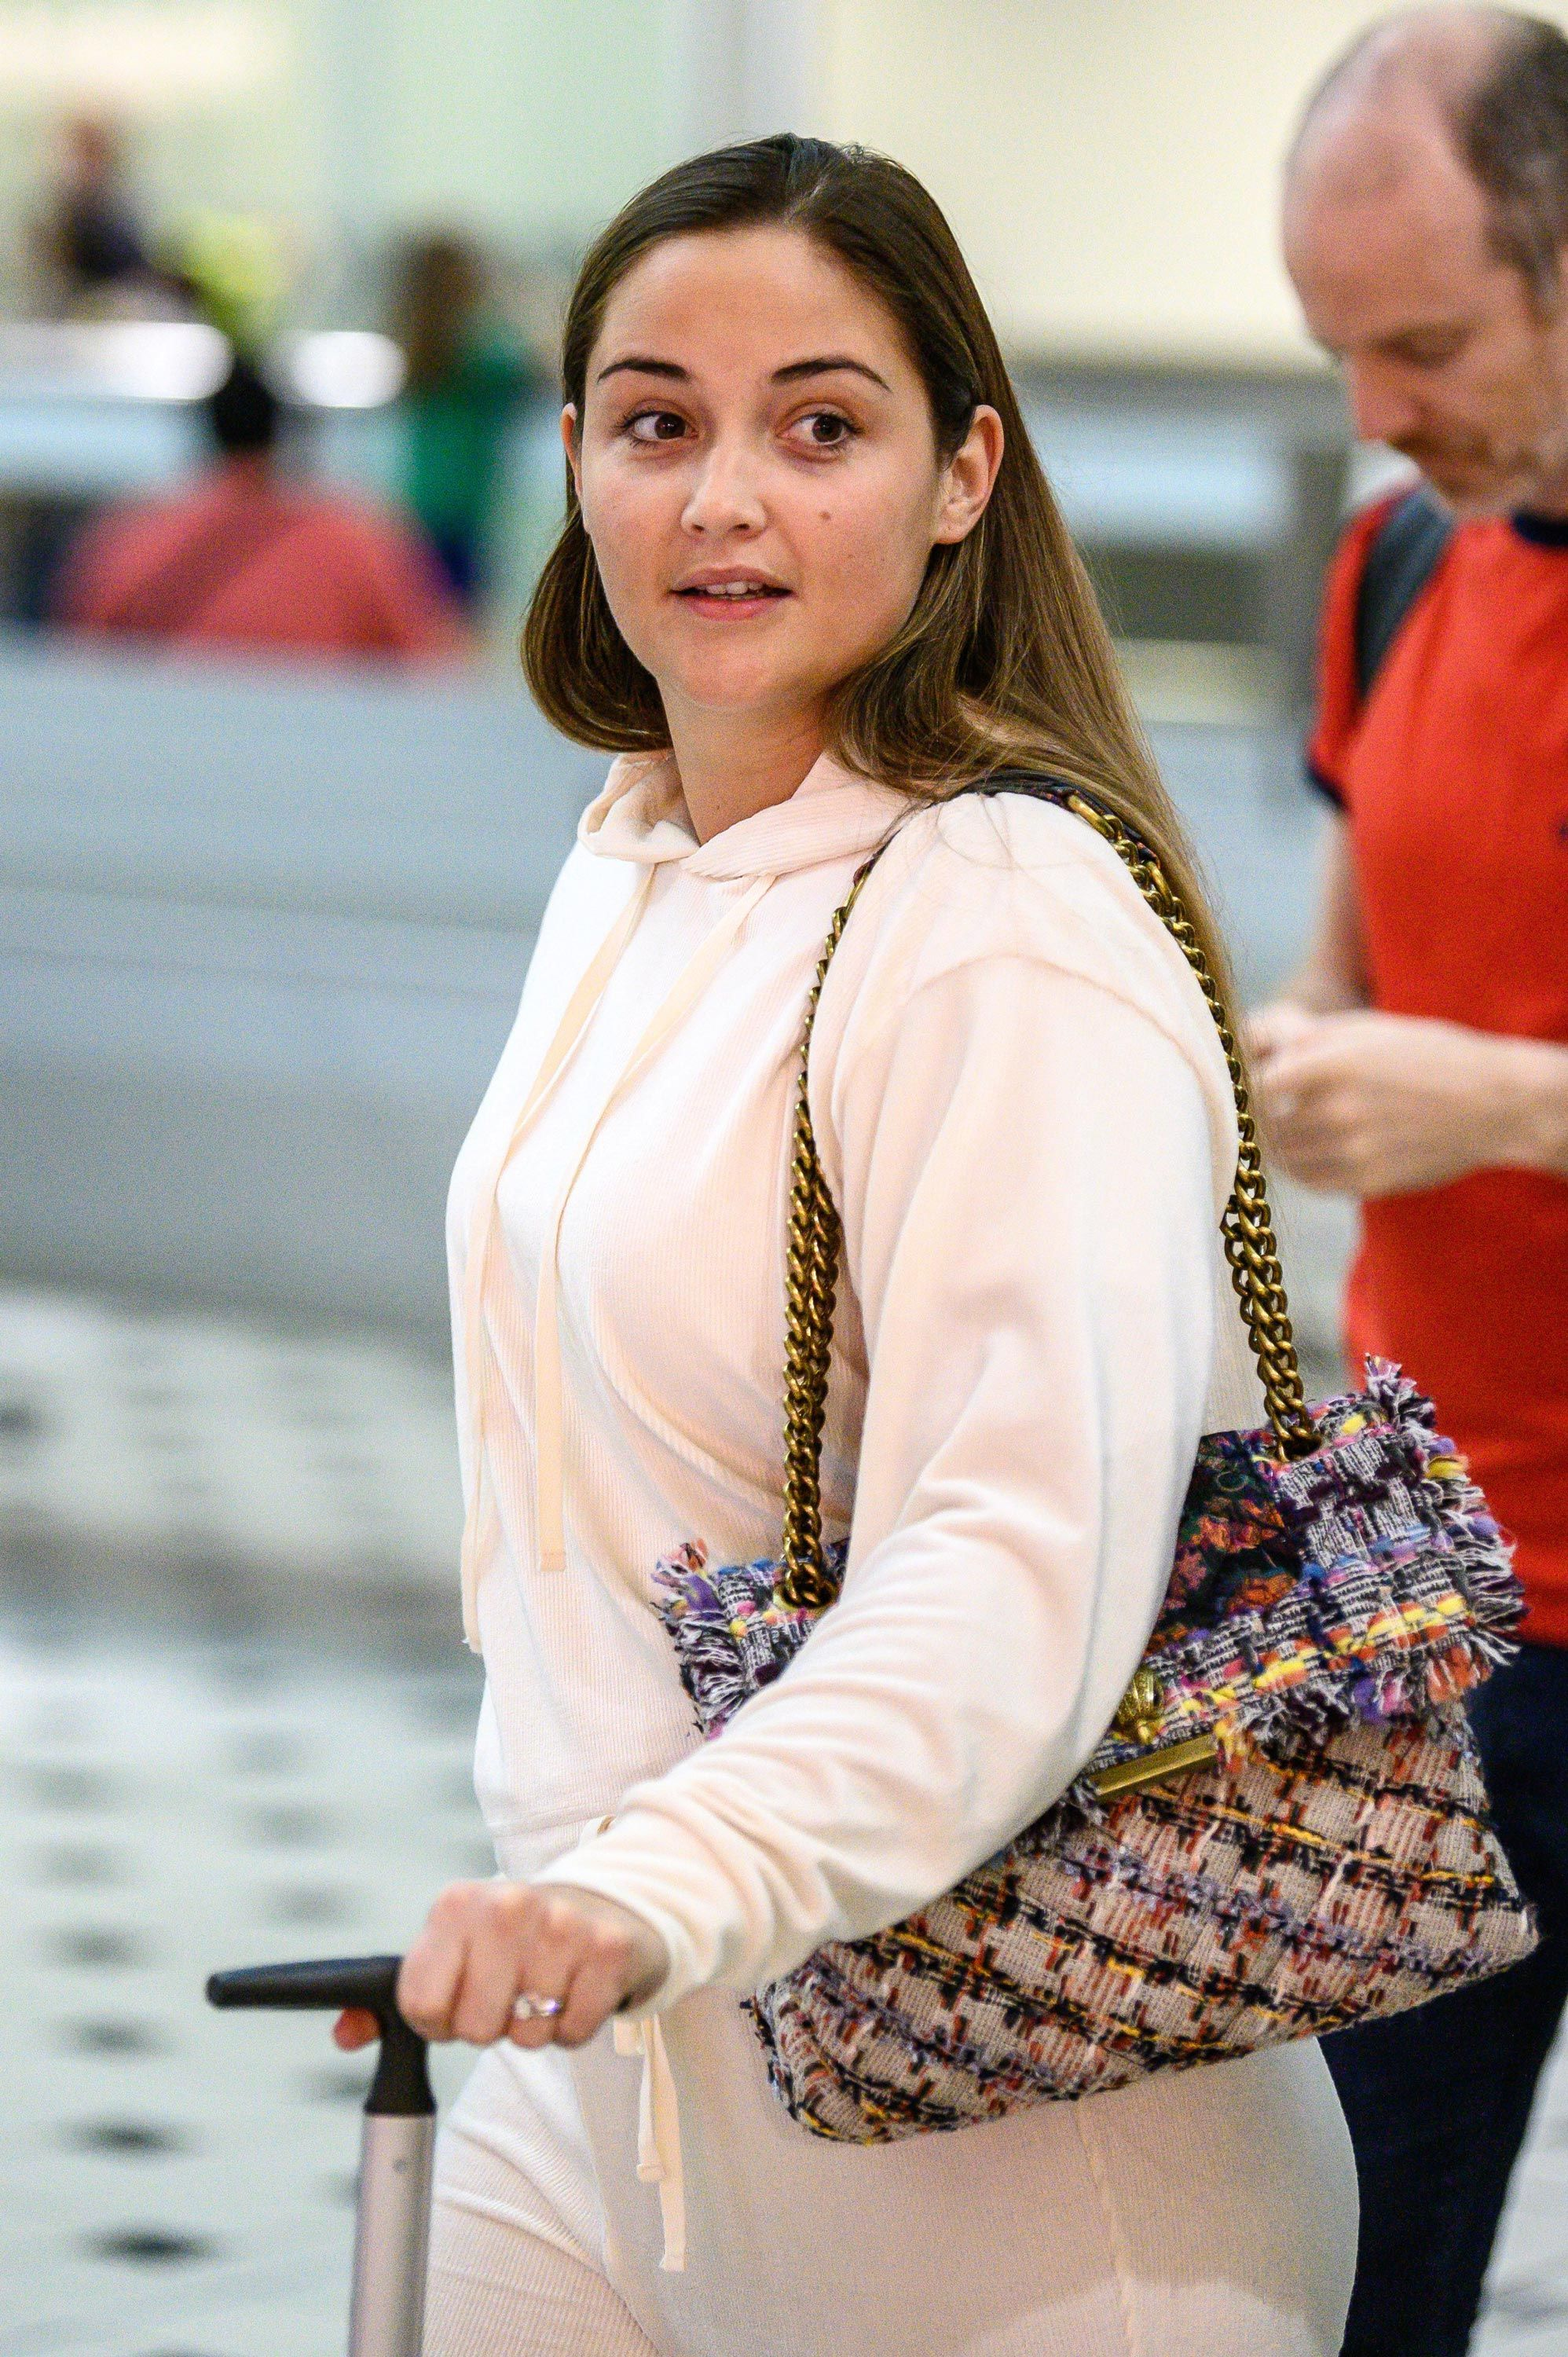 EastEnders star Jacqueline Jossa arrives in Australia ahead of I'm a Celebrity 2019 series